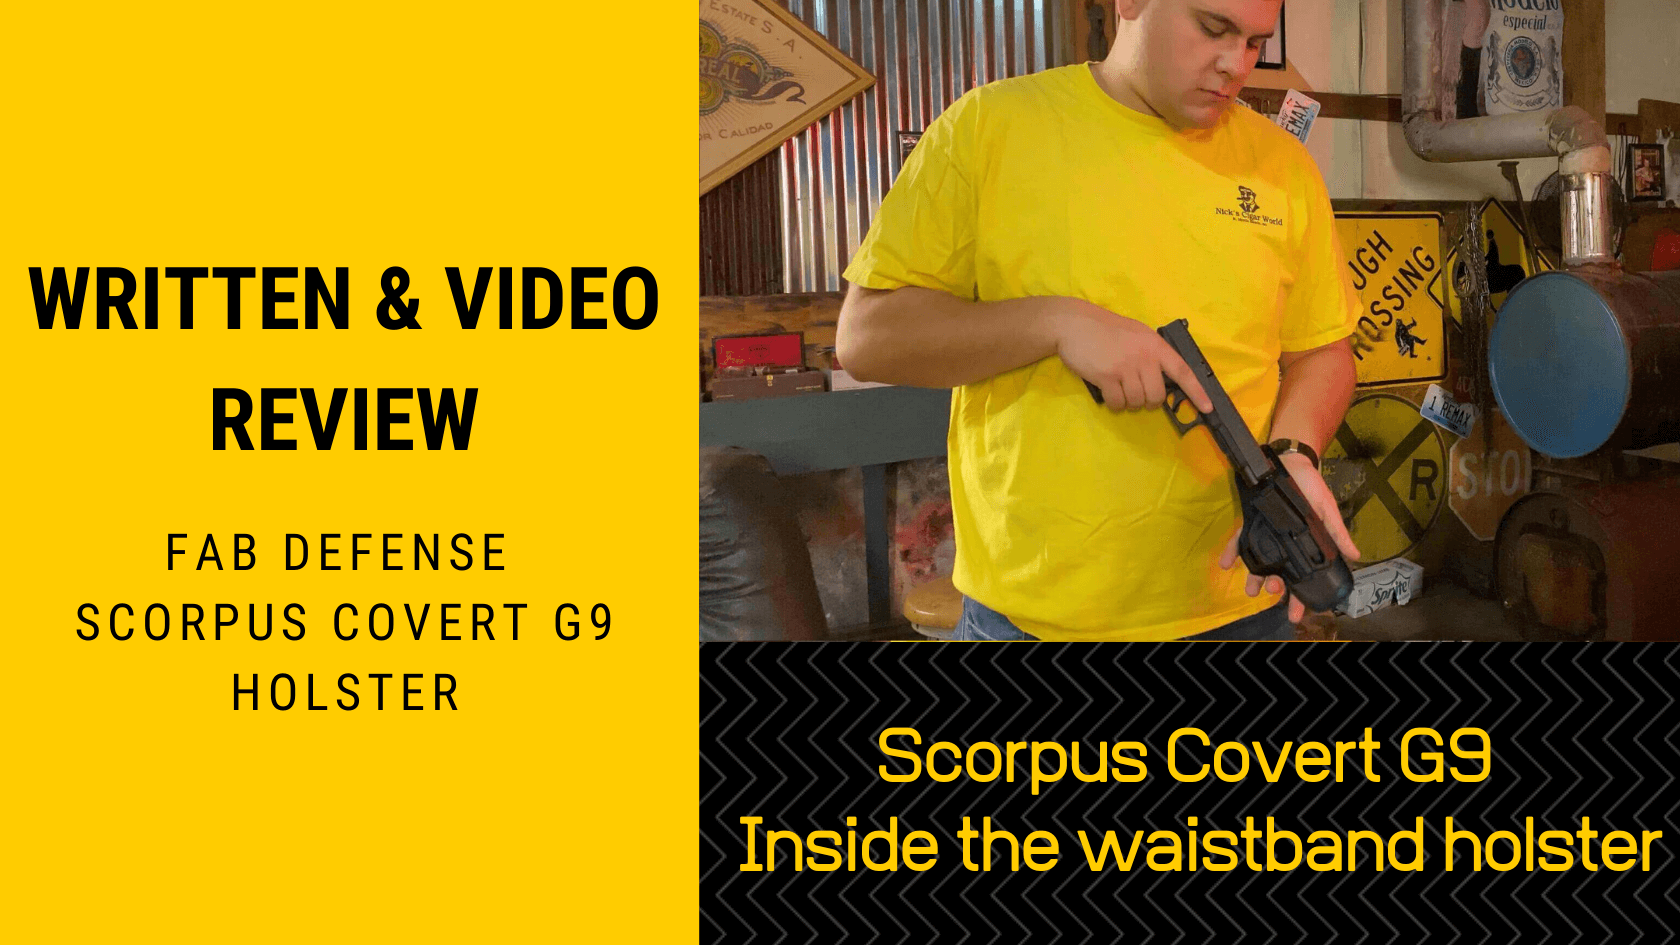 Written & Video Review Scorpus Covert G9 Inside the waistband holster